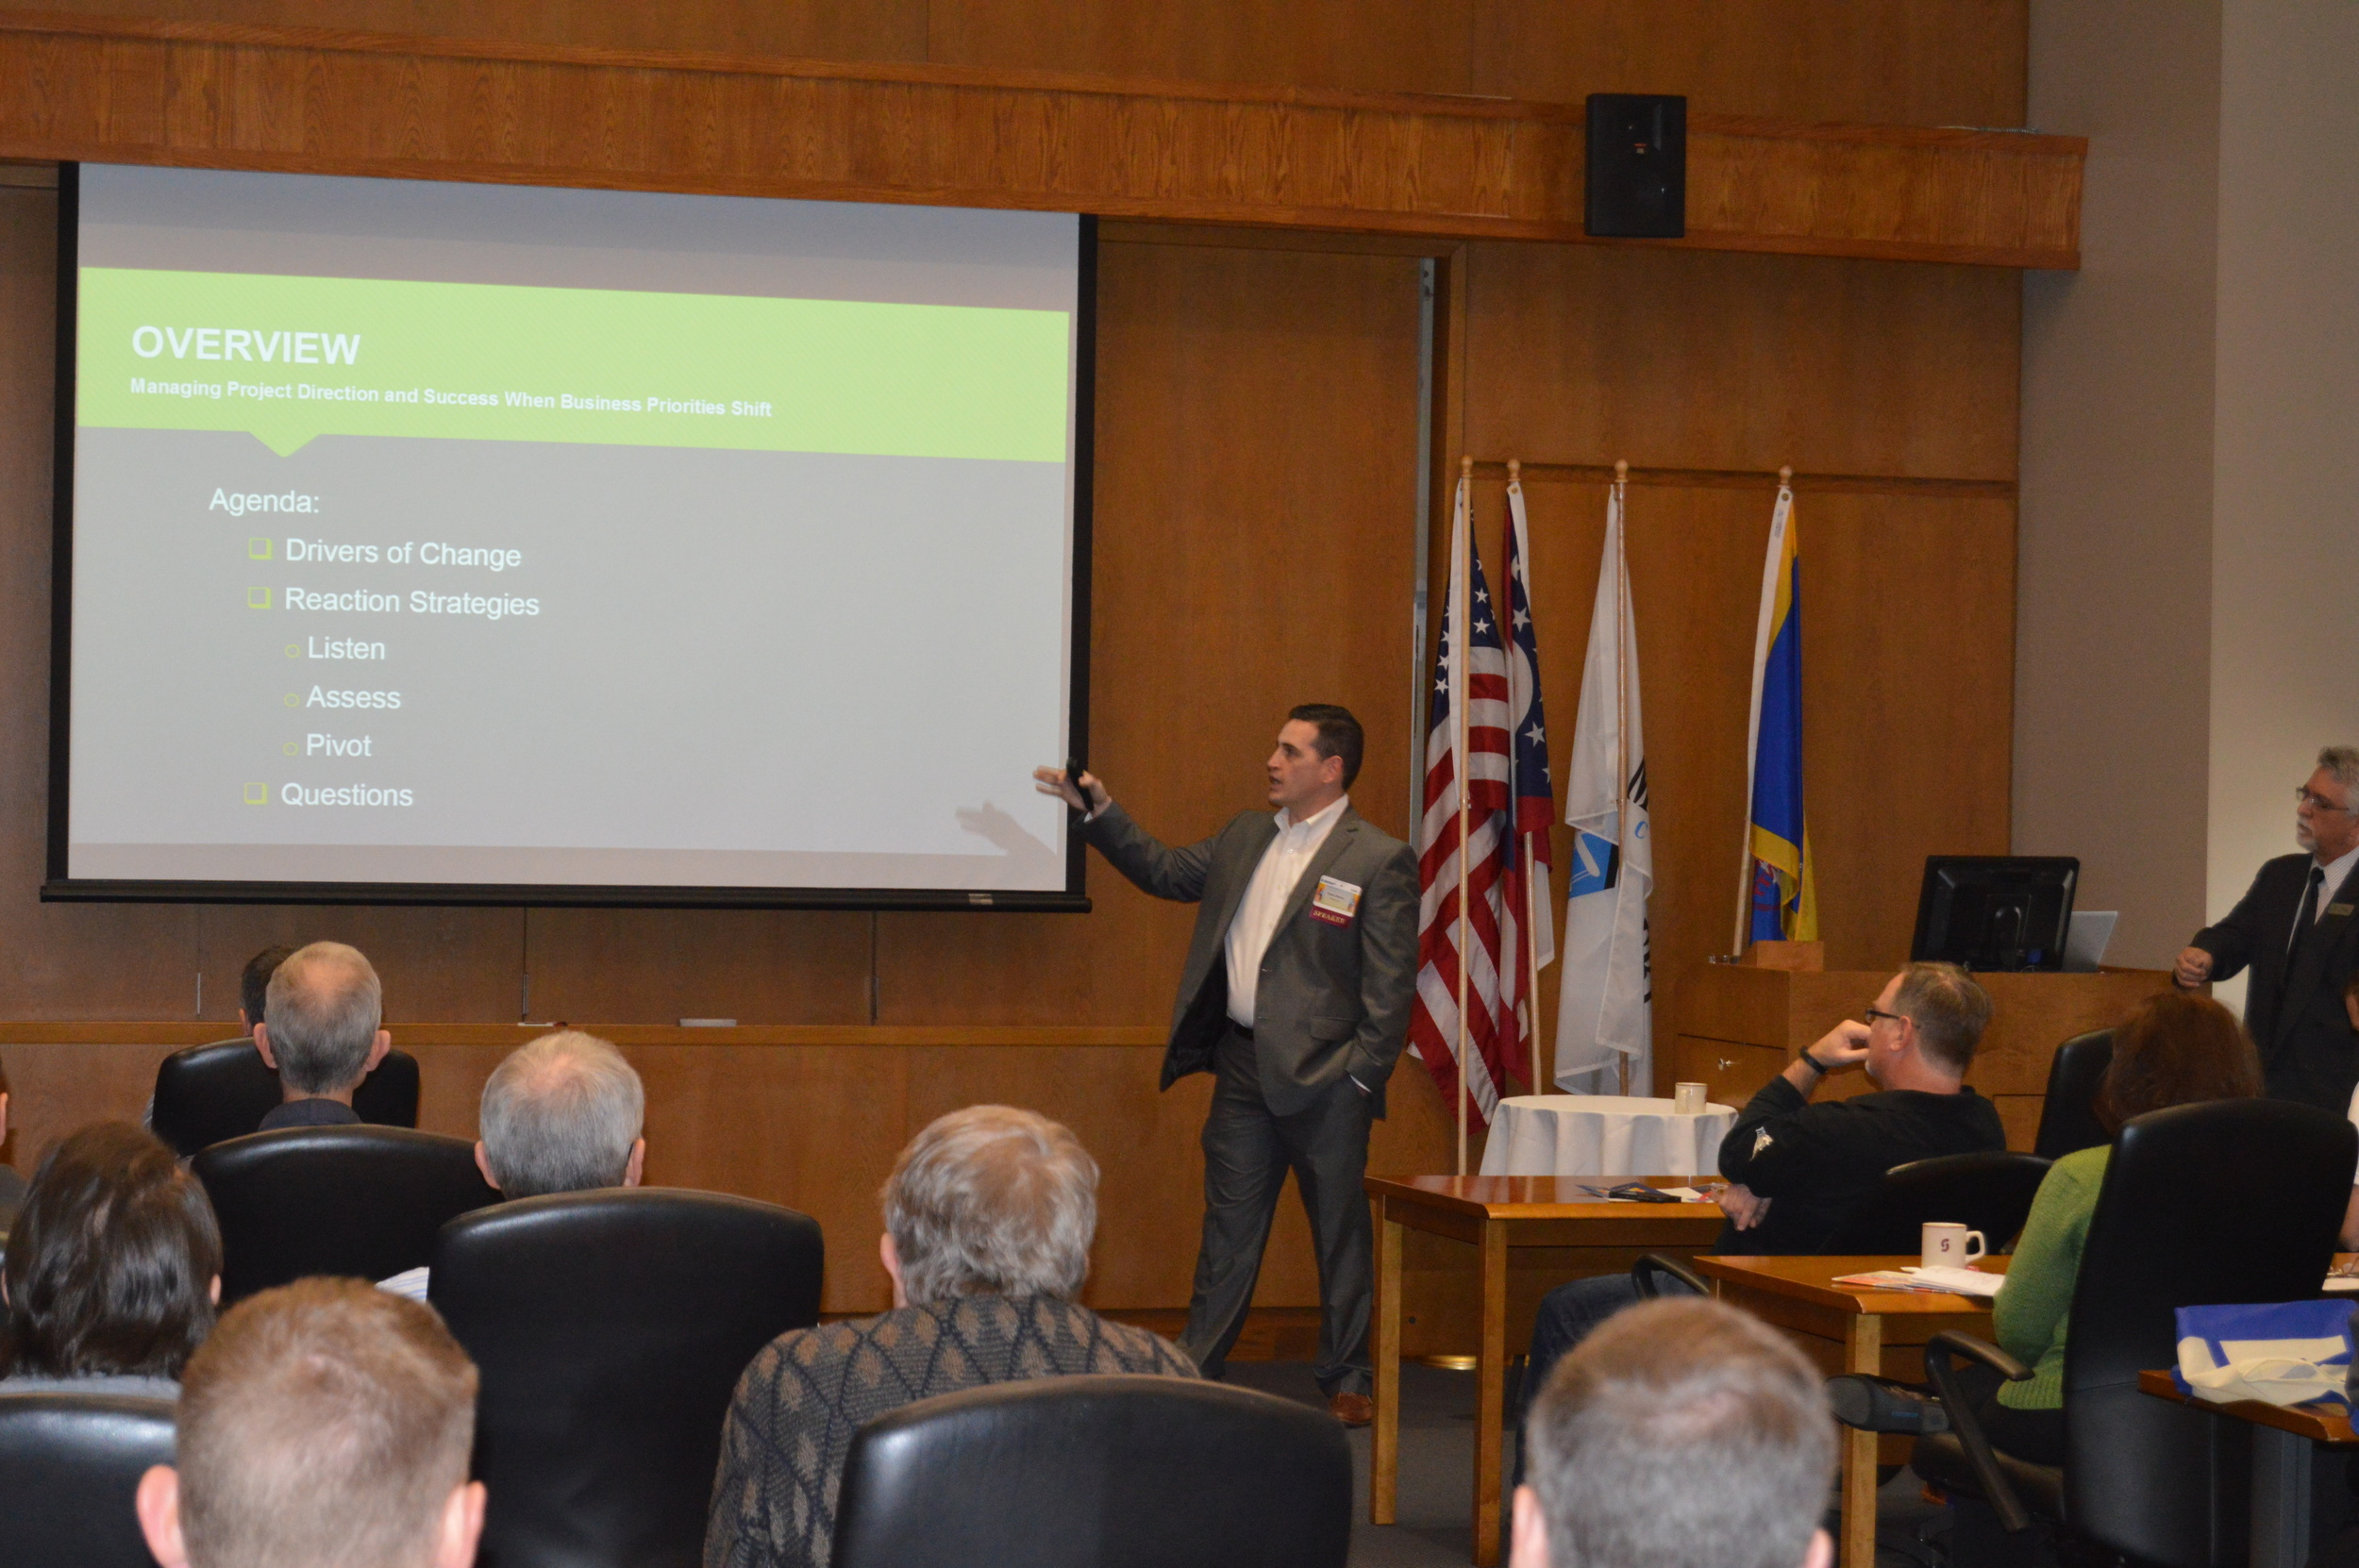 Dustin Werden, Director of Project Management at AfidenceIT, Discussed Reaction Strategies at the Taste of IT Conference.